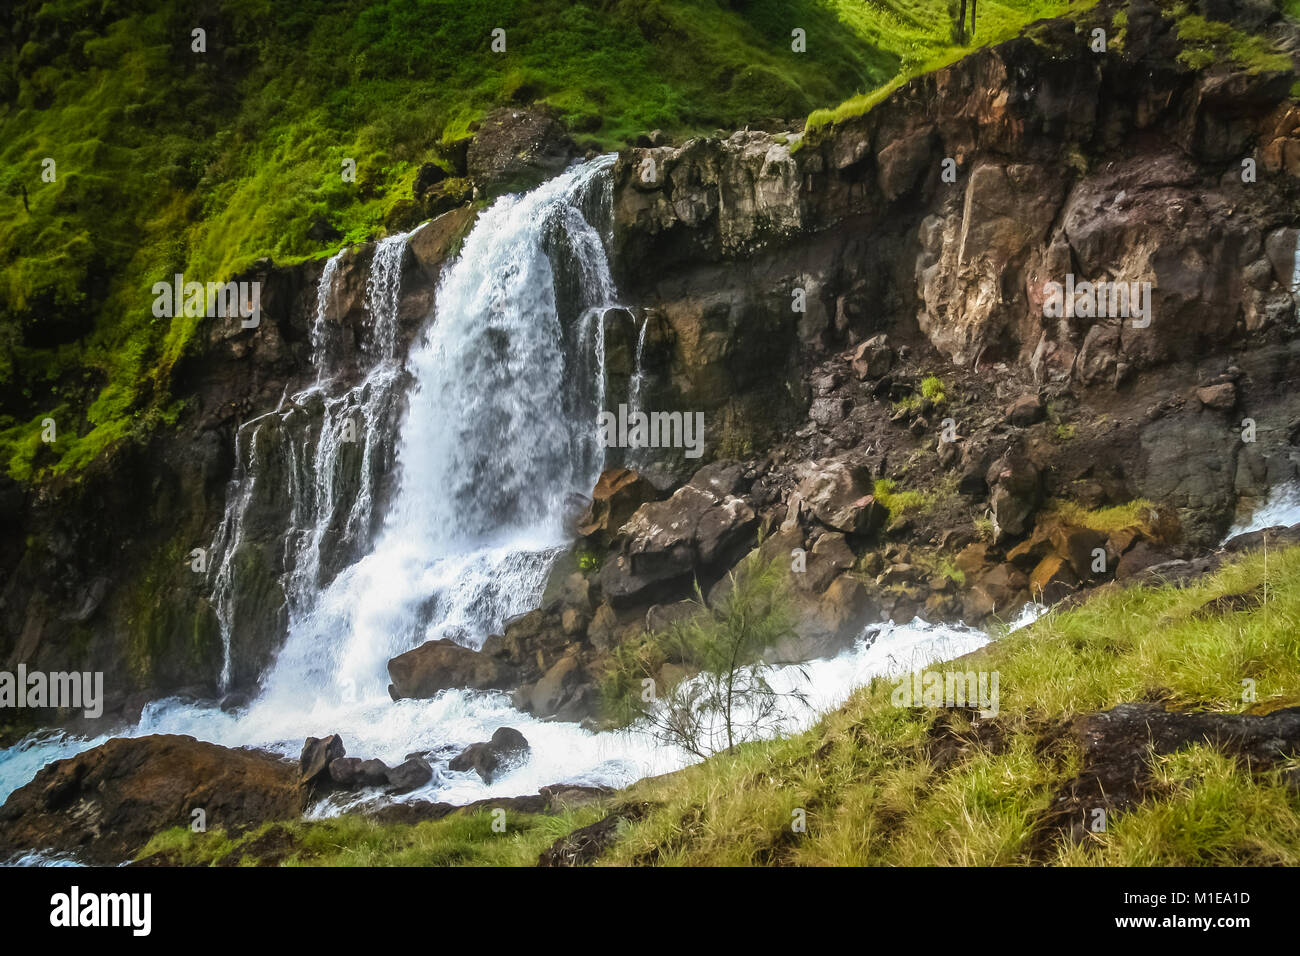 Waterfall with a water coming out of crater lake of Gunung Rinjani volcano, Lombok island, Indonesia - Stock Image